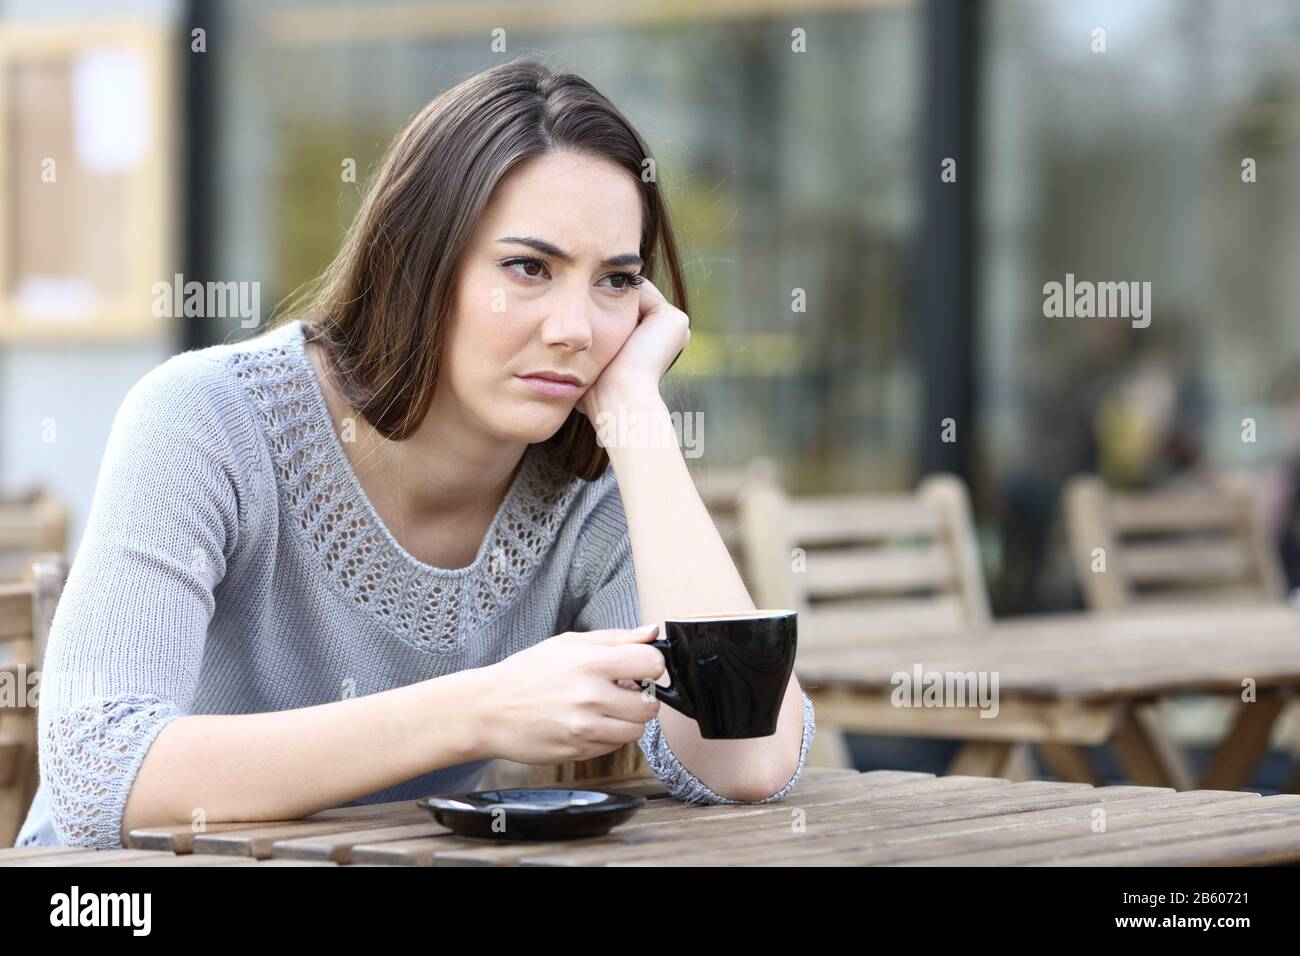 Sad young woman looking away holding a cup of coffee on a restaurant terrace Stock Photo